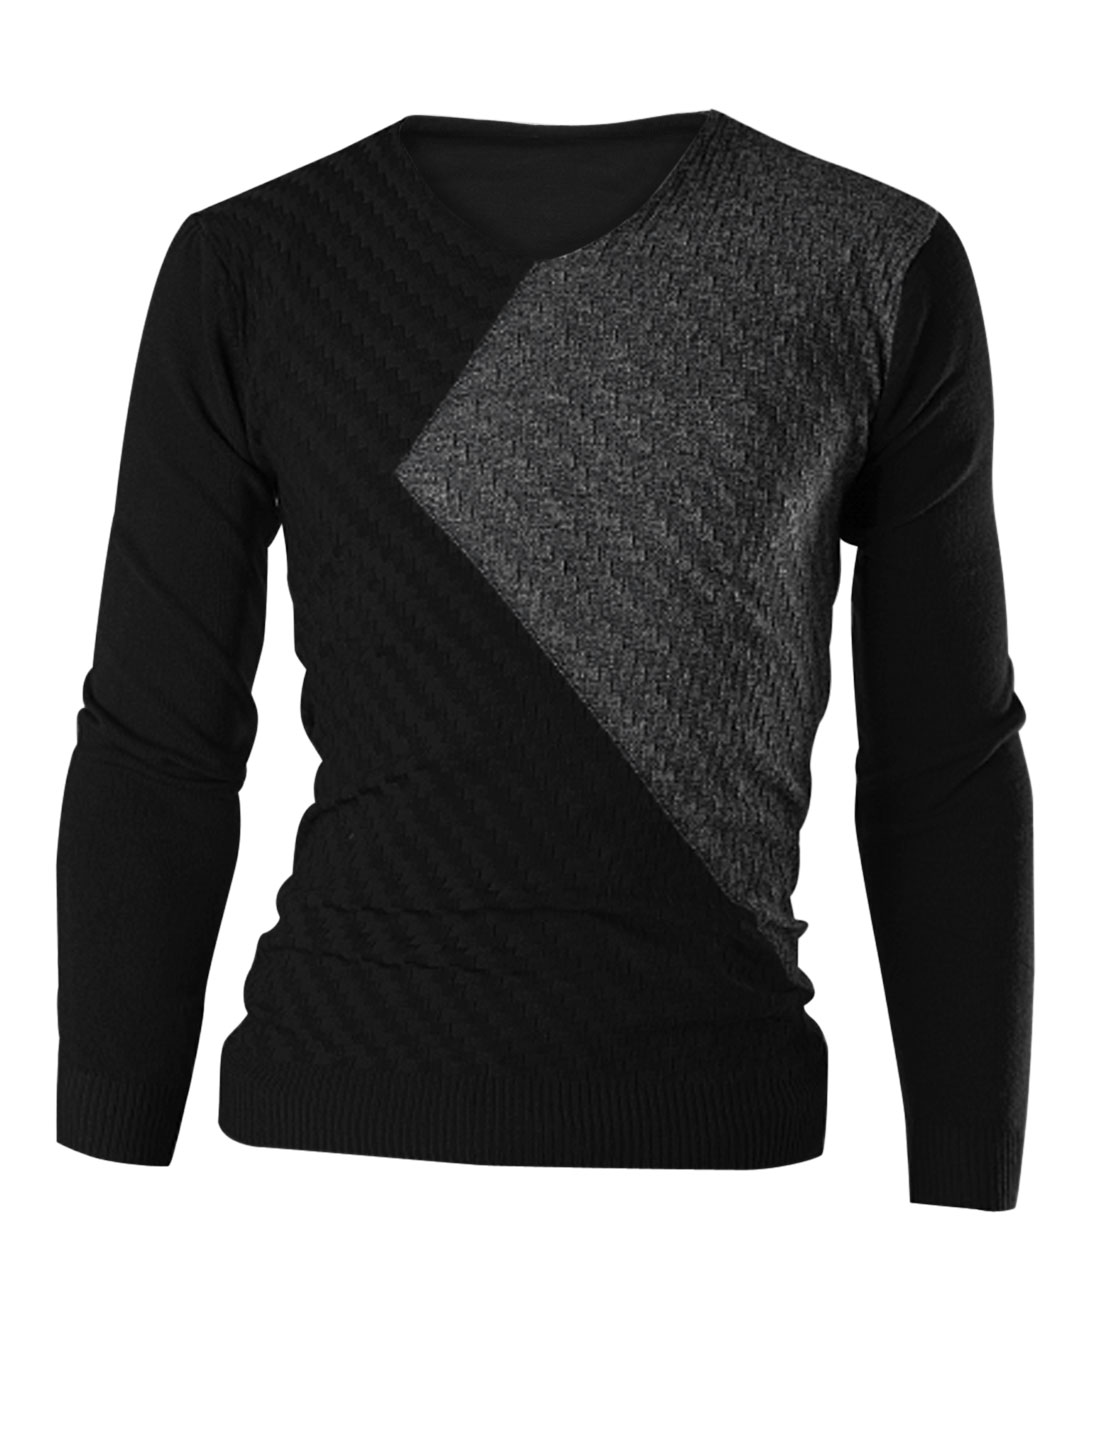 Men V Neck Color Block Fashionable Cozy Fit Knit Shirt Black Dark Gray M